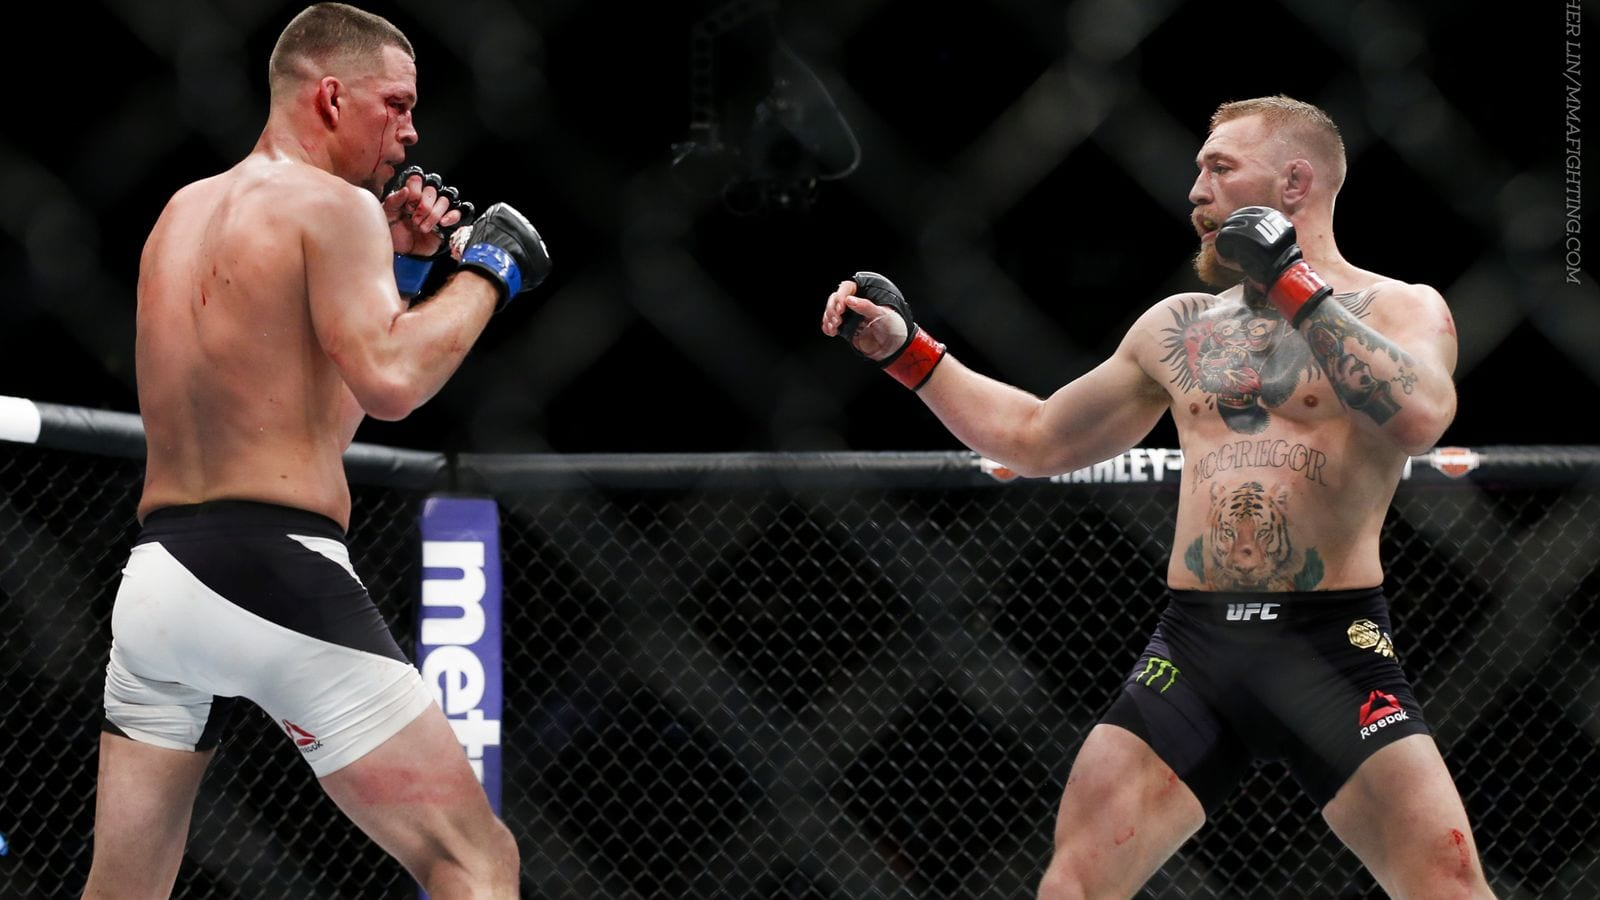 https://news.sportsinteraction.com/wp-content/blogs.dir/1341/files/2016/08/Conor-McGregor-Nate-Diaz-UFC-202.jpg